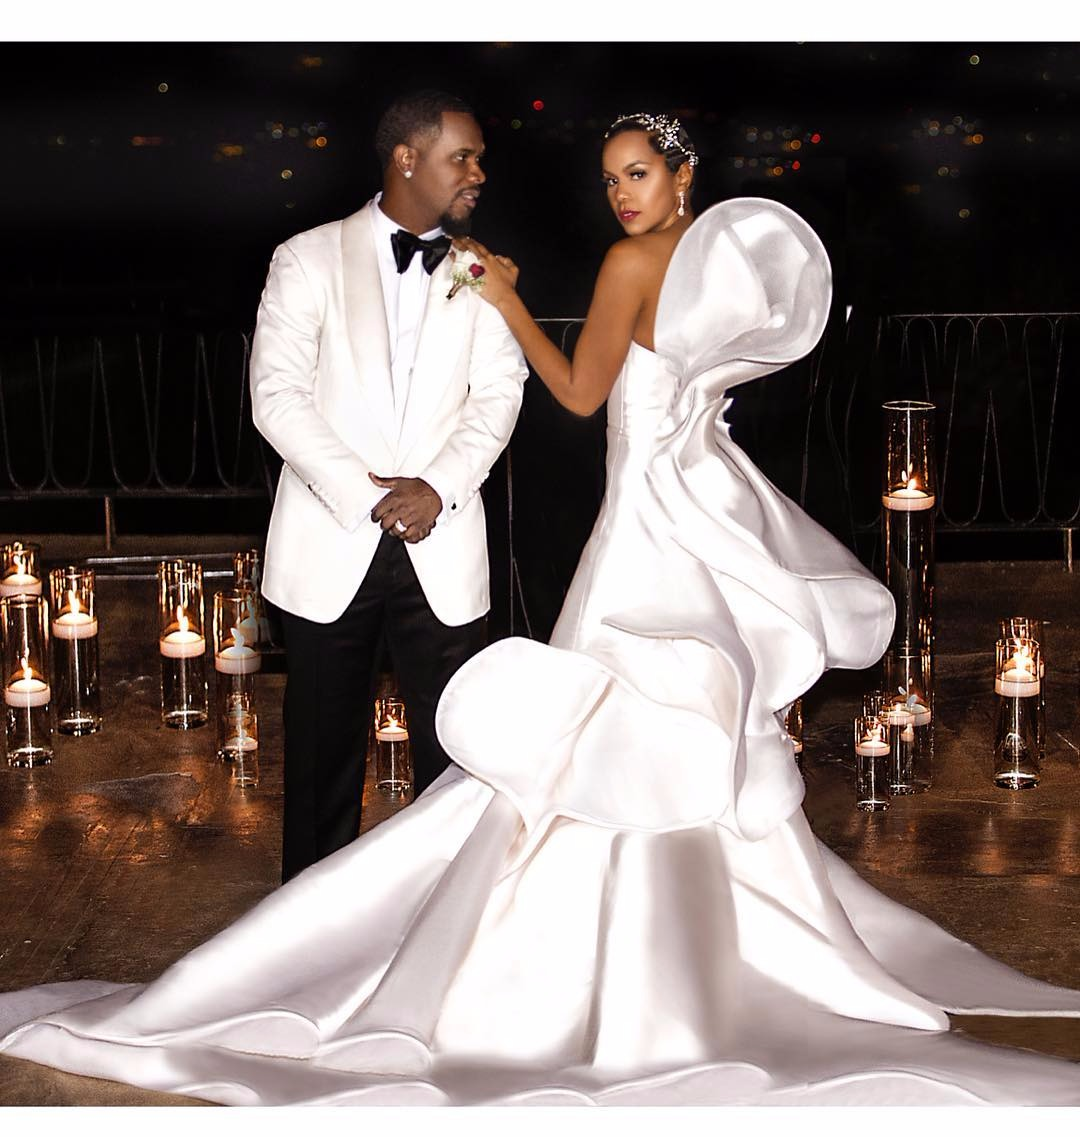 Tommicus Walker and LeToya Luckett are flaunting their wedding dress in their special day. Luckett looking beautiful in her beautiful white wedding gown and she is accompanied by husband Tommicus looking equally handsome.